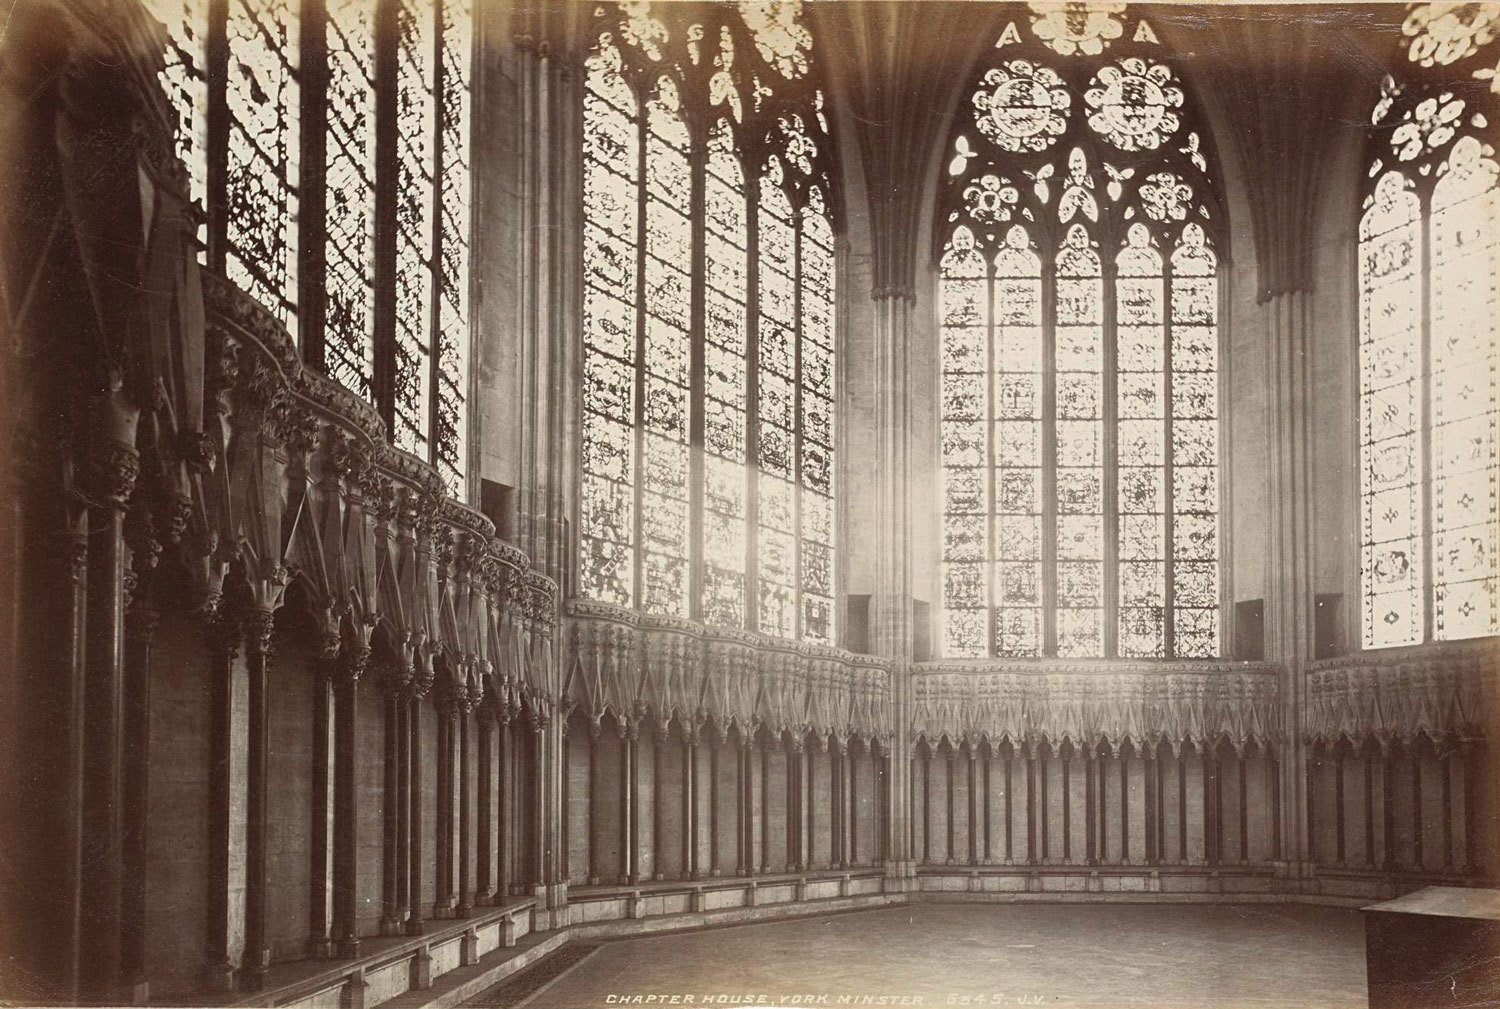 Interior of the Chapter Room of the Cathedral of York Chapter House, York Minster, 1899, James Valentine, Rijksmuseum, Public Domain Mark